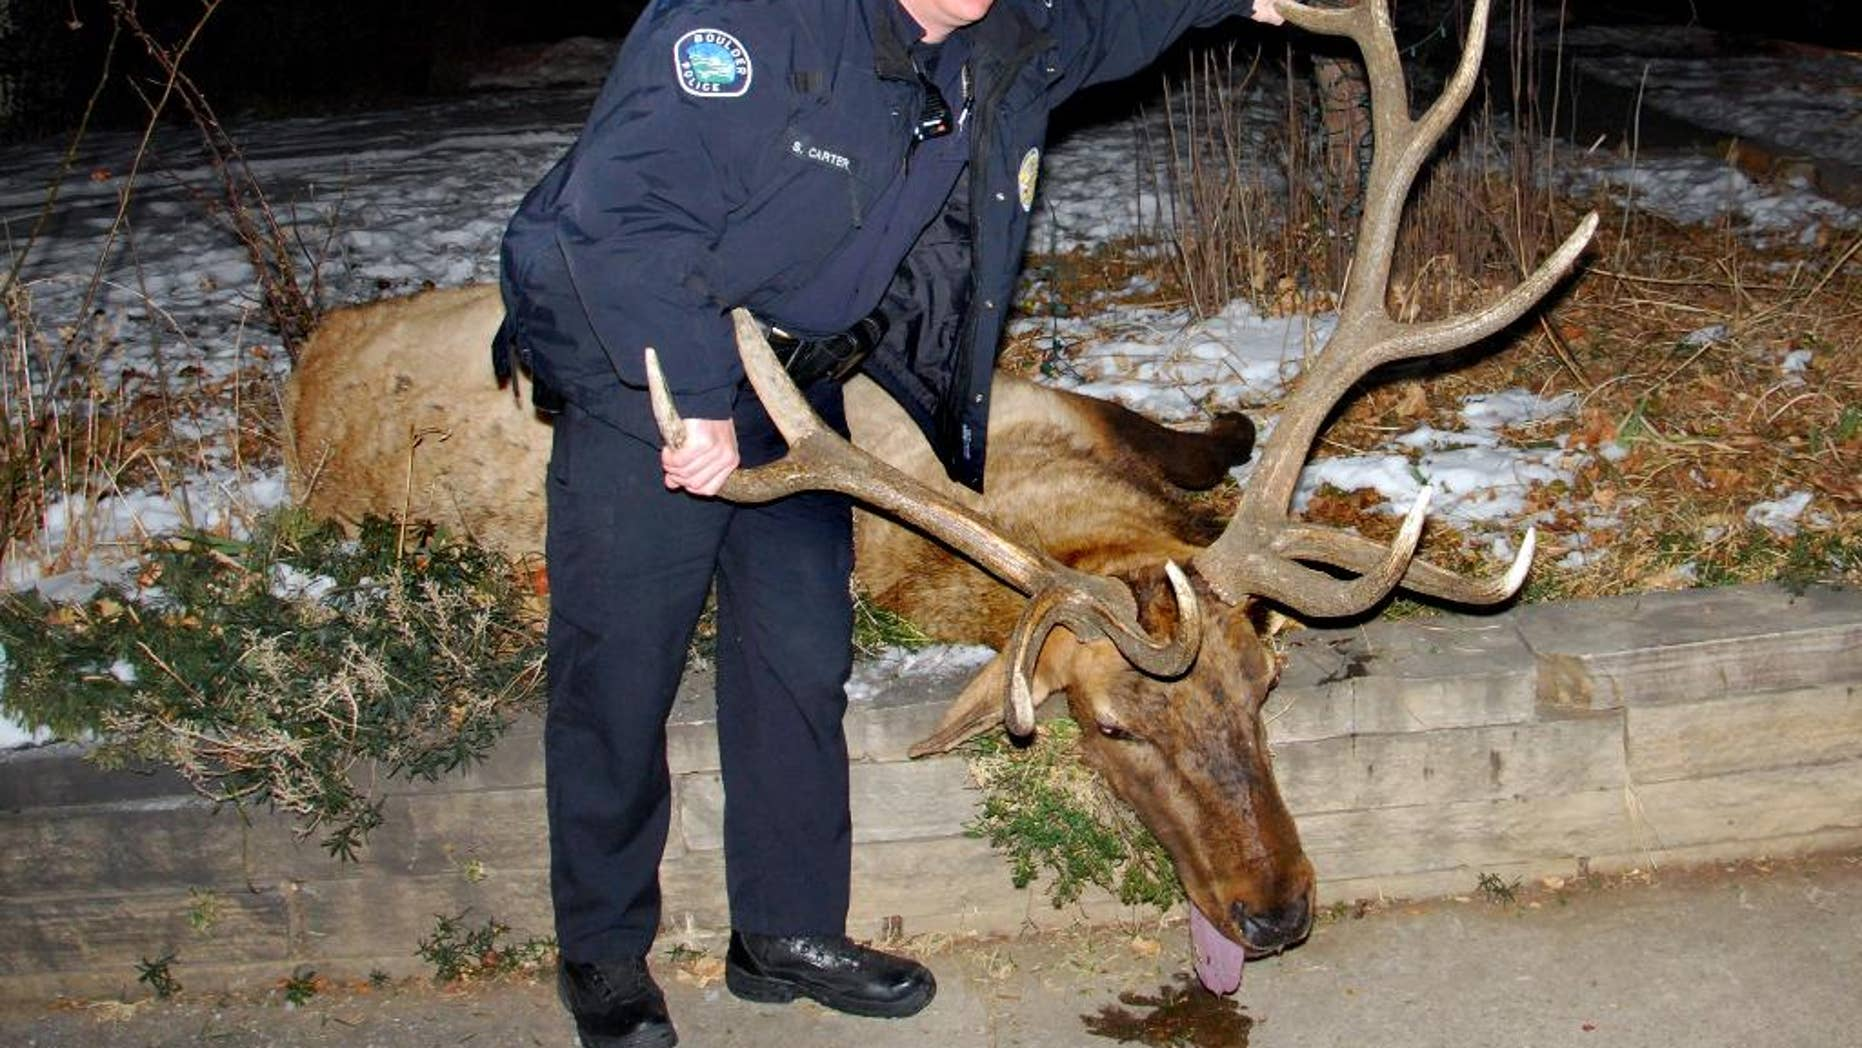 """FILE - This Jan. 1, 2013 photo provided by Lara Koenig, shows Boulder Police Officer Sam Carter, 37,  posing with an elk he allegedly shot in Boulder, Colo. Carter, the former Boulder police officer convicted of killing the  treasured bull elk, faces sentencing Friday, Aug. 29, 2014. District Attorney Stan Garnett has recommended that Carter be sentenced to one year in prison. In a court filing, he called Carter """"flippant"""" and """"arrogant"""" attitude toward his conviction in the shooting of the trophy elk known around town as """"Big Boy."""" (AP Photo/Lara Koenig via The Daily Camera, File) NO SALES"""